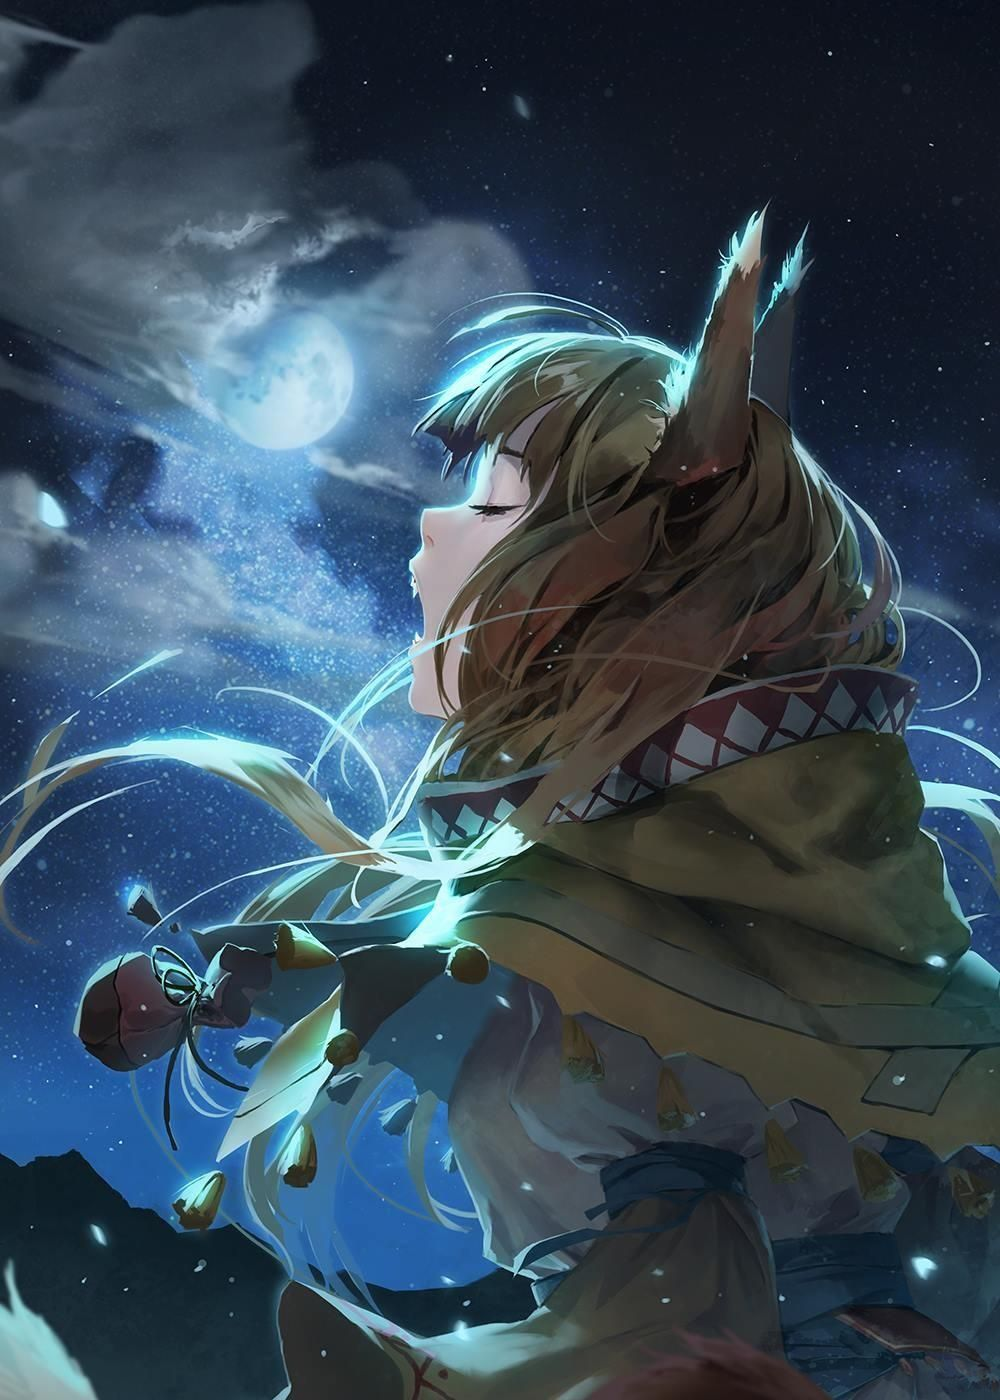 Holo Howling At The Moon Spice And Wolf Holo Anime Wolf Girl Spice And Wolf